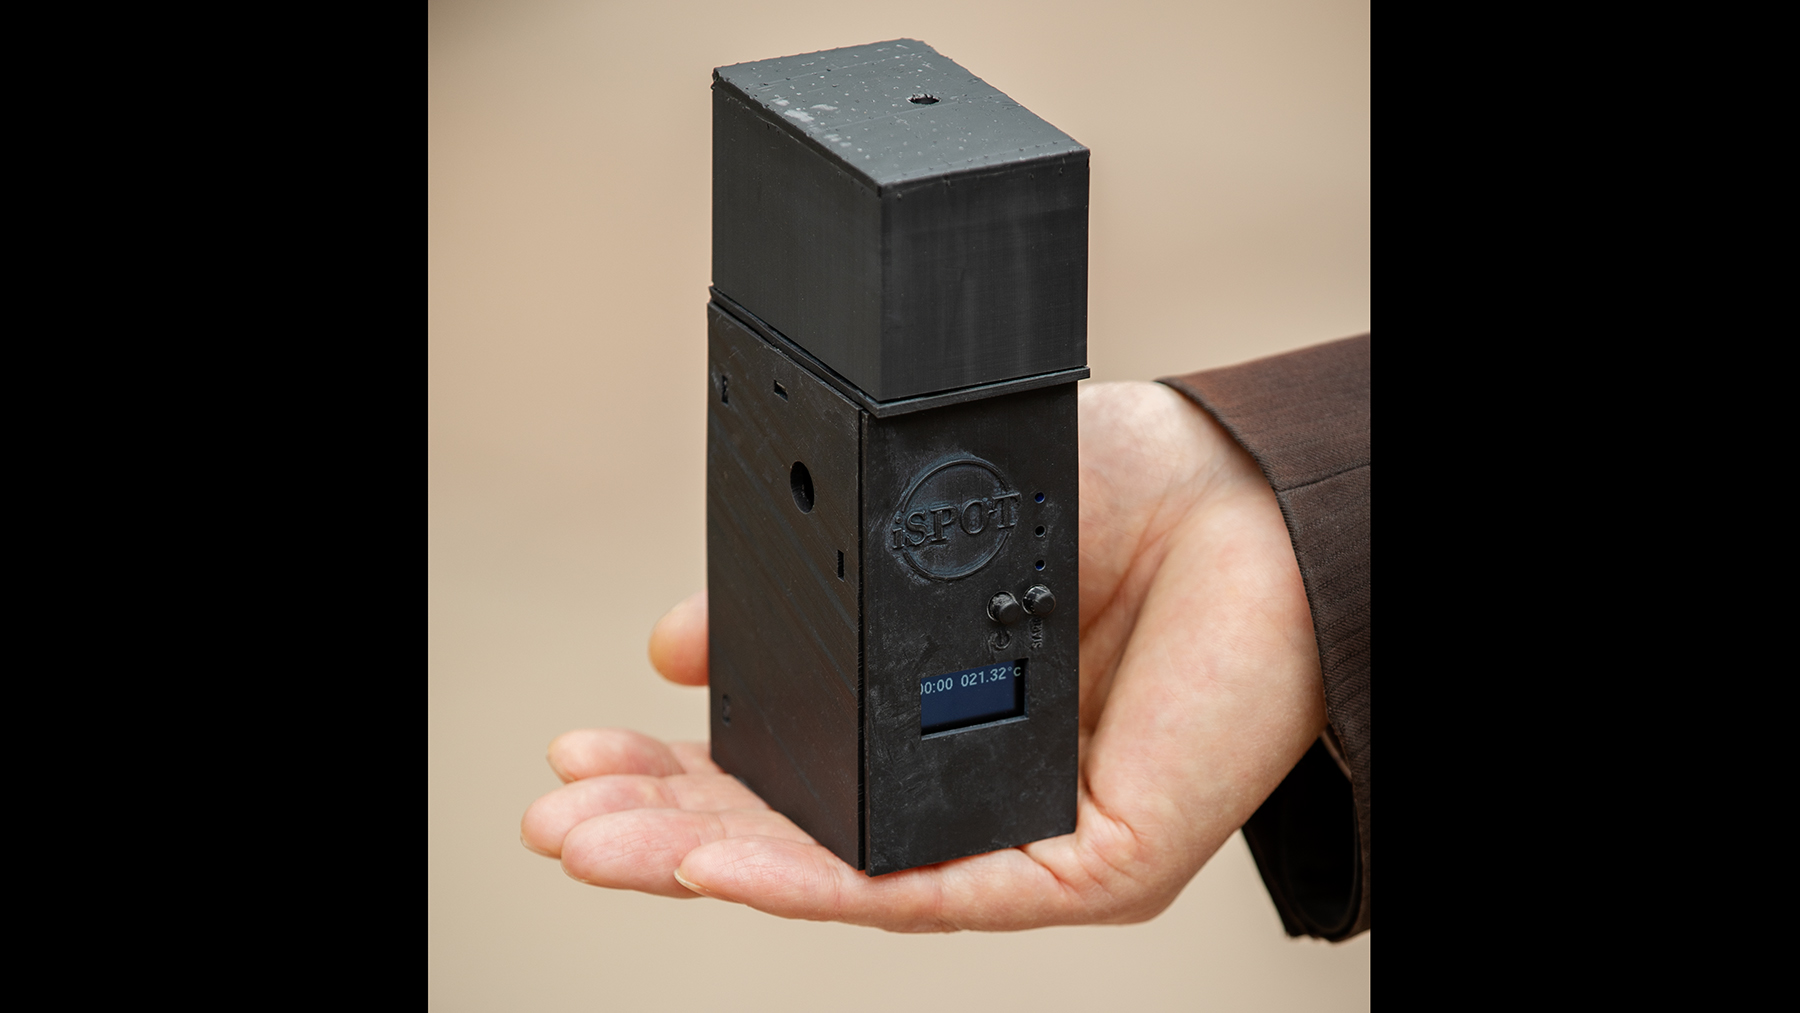 Photo of a hand holding a black rectangular testing device.